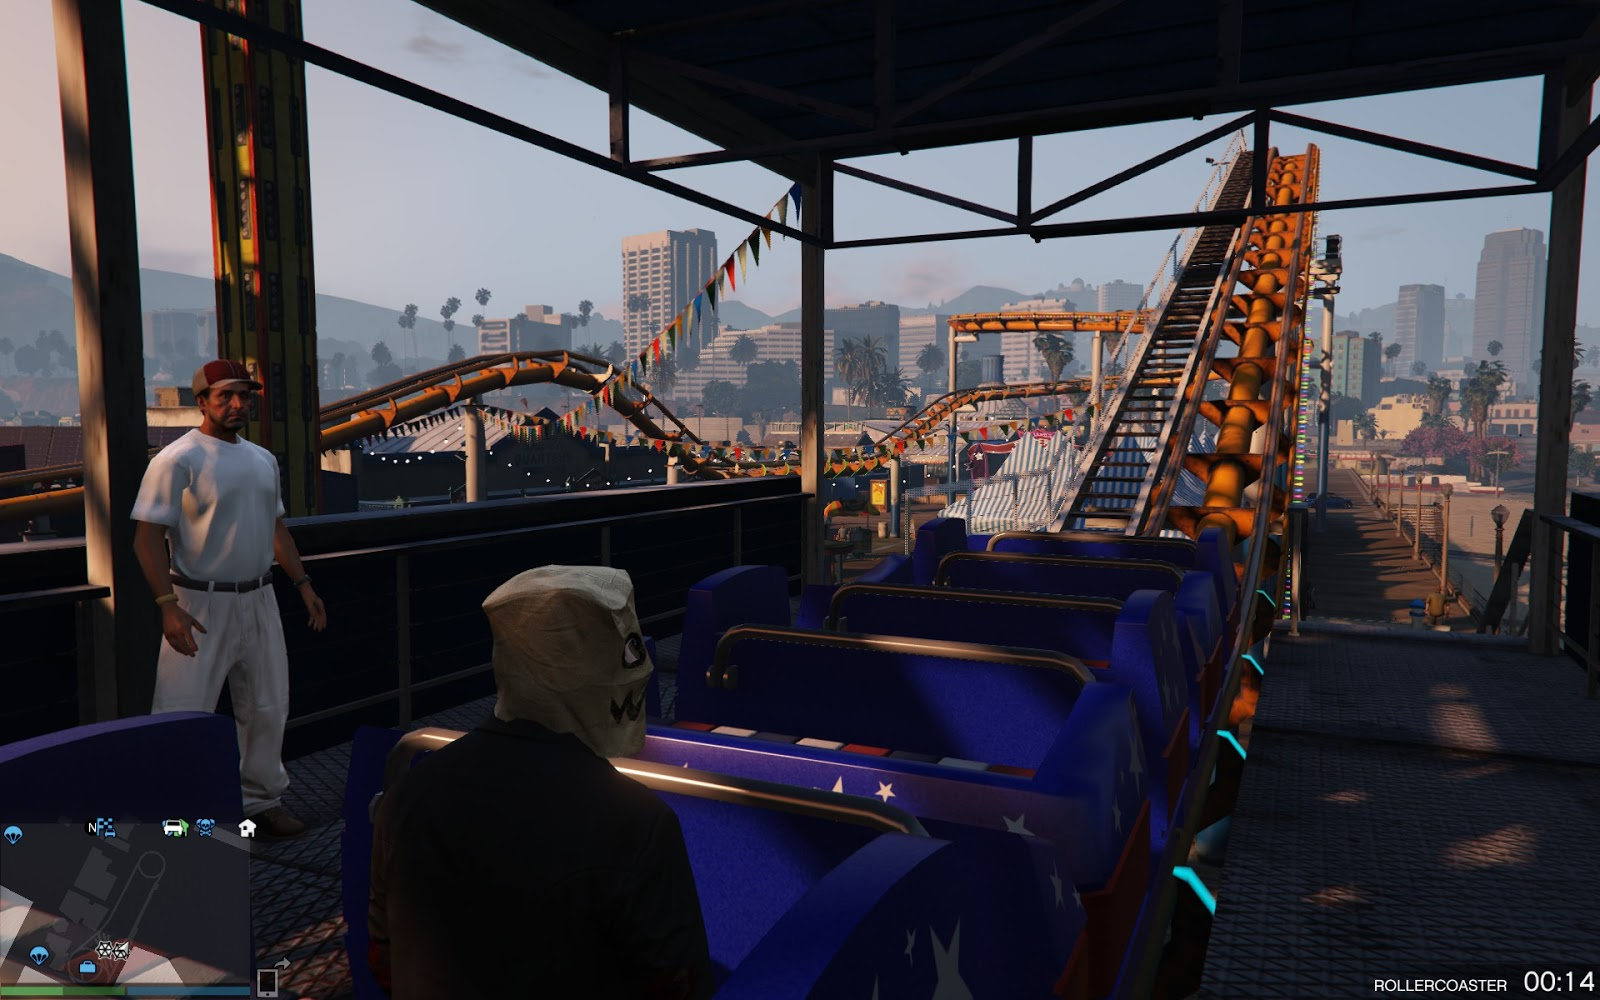 Thematic dissonance gta online is pay to win only just kinda but not really at all